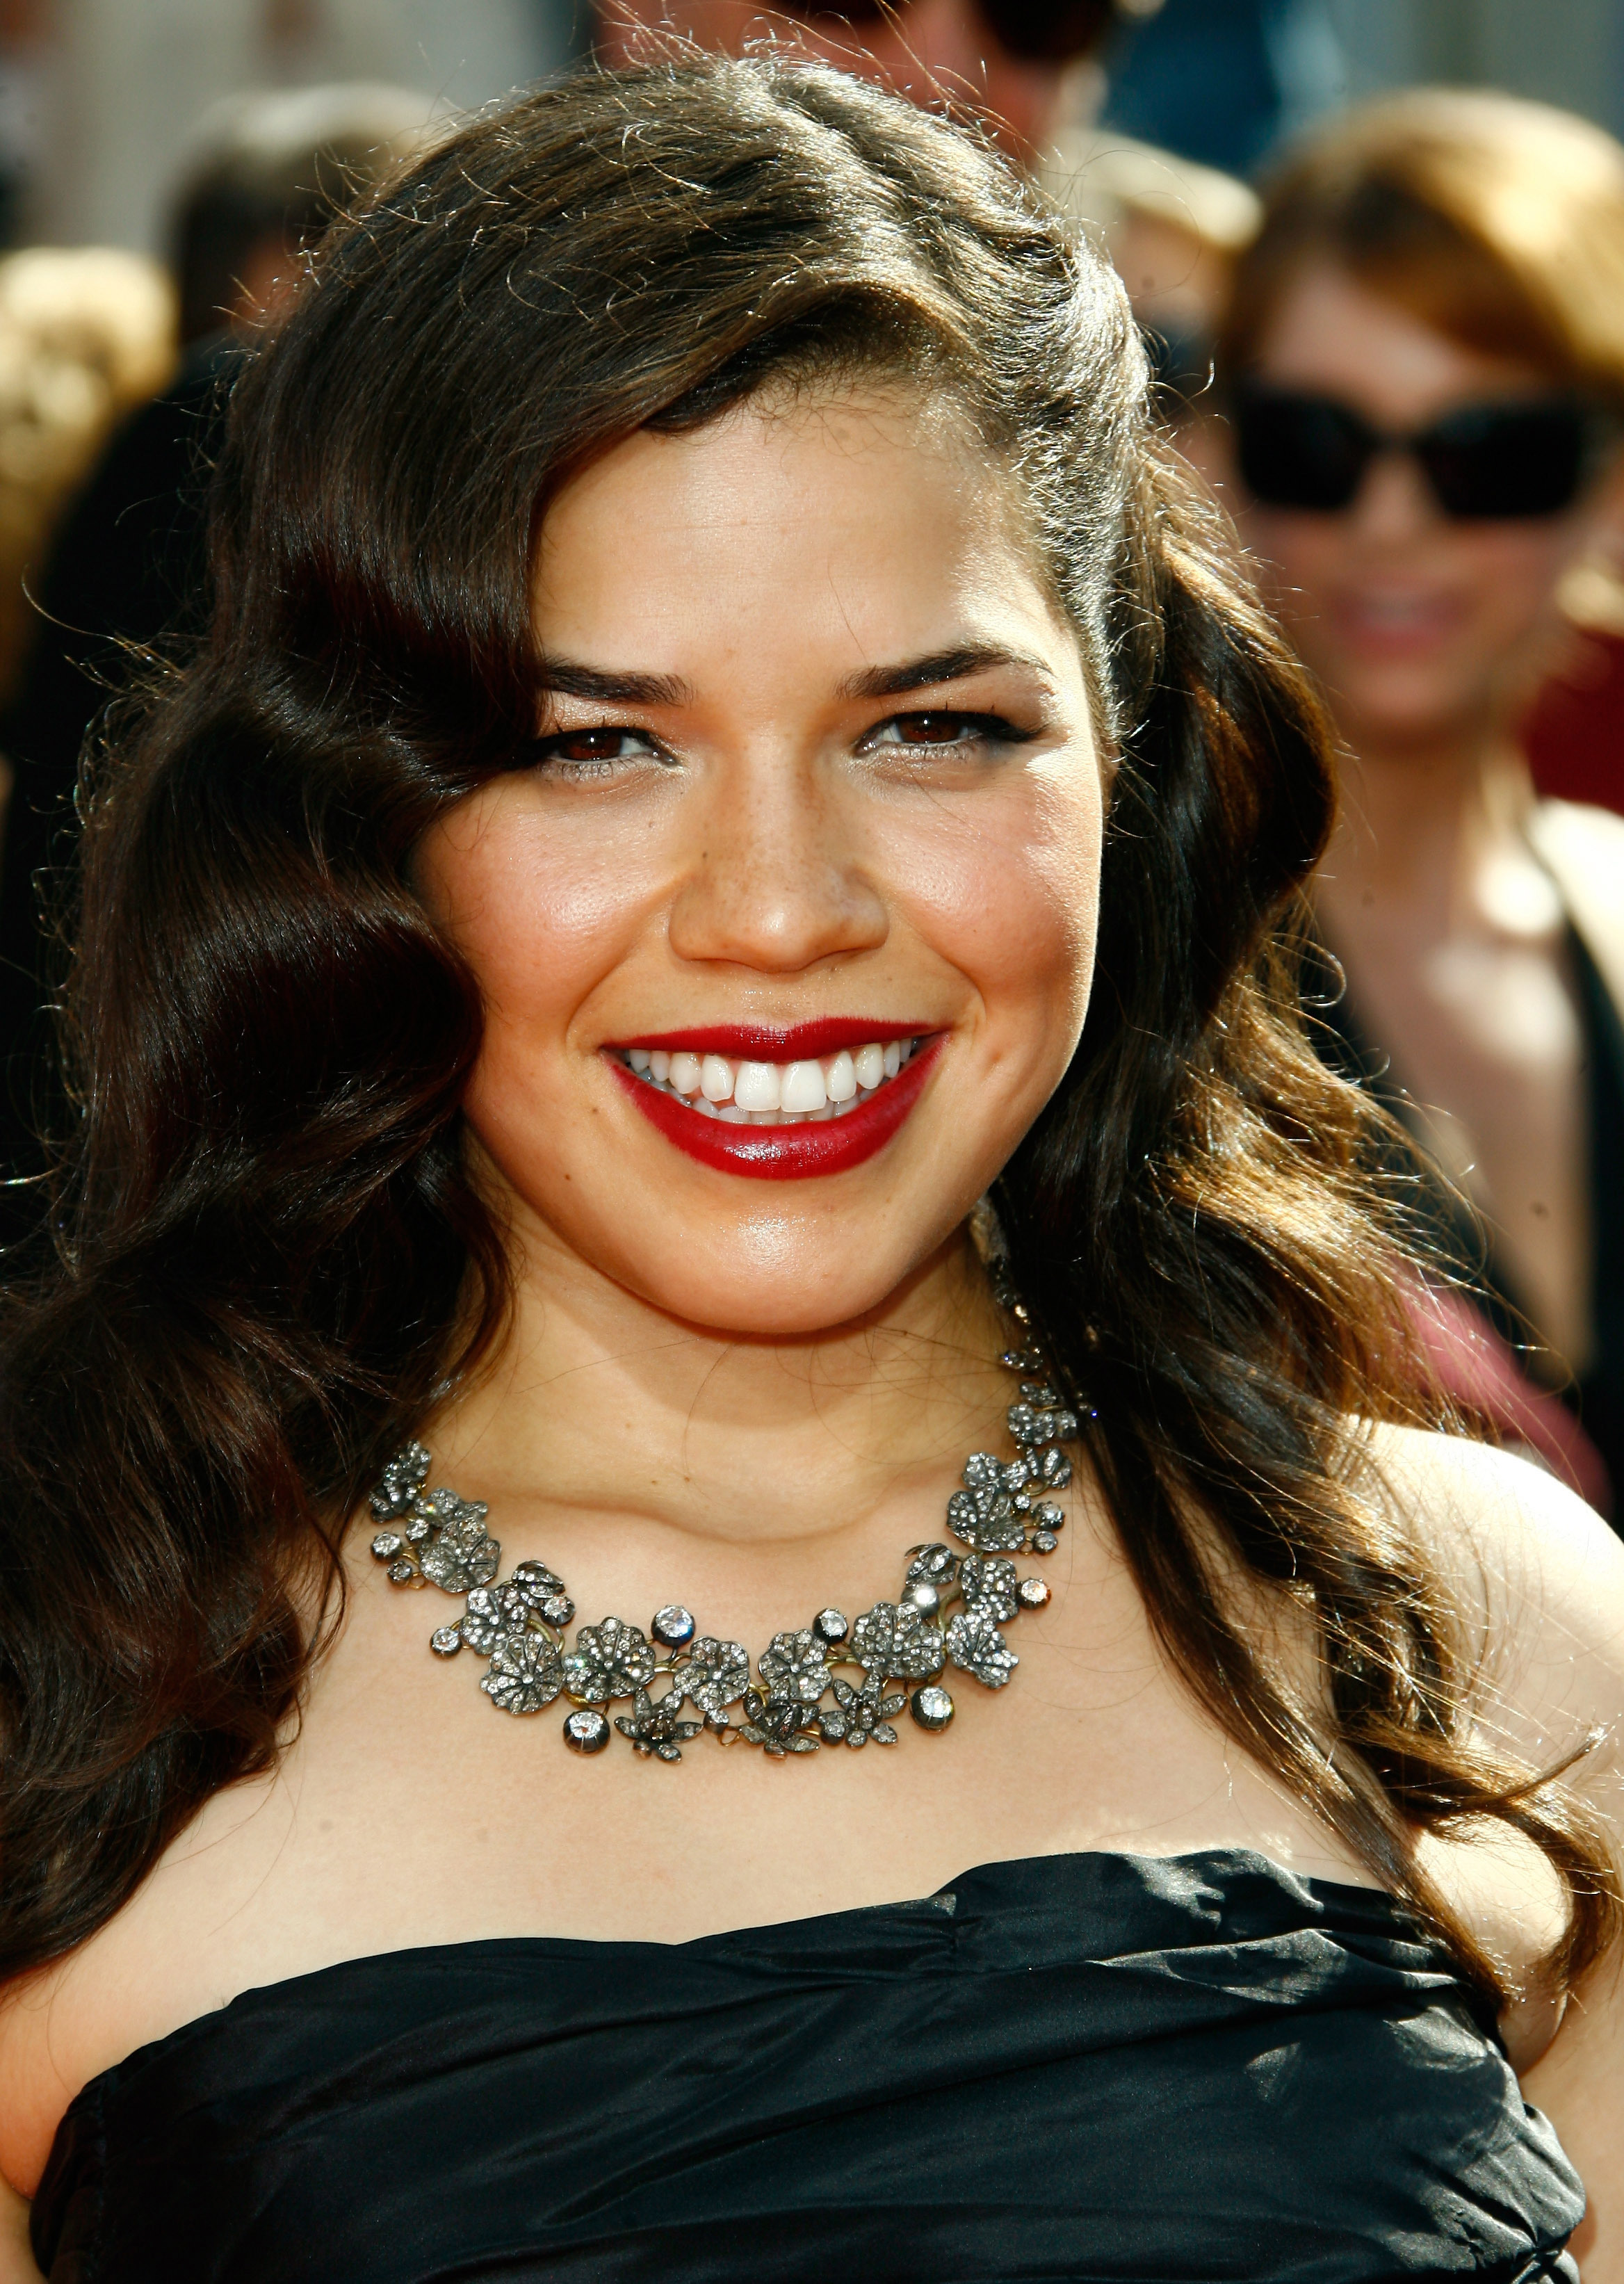 Actress America Ferrera arrives at the 60th Primetime Emmy Awards at the Nokia Theater in Los Angeles on Sept. 21, 2008.